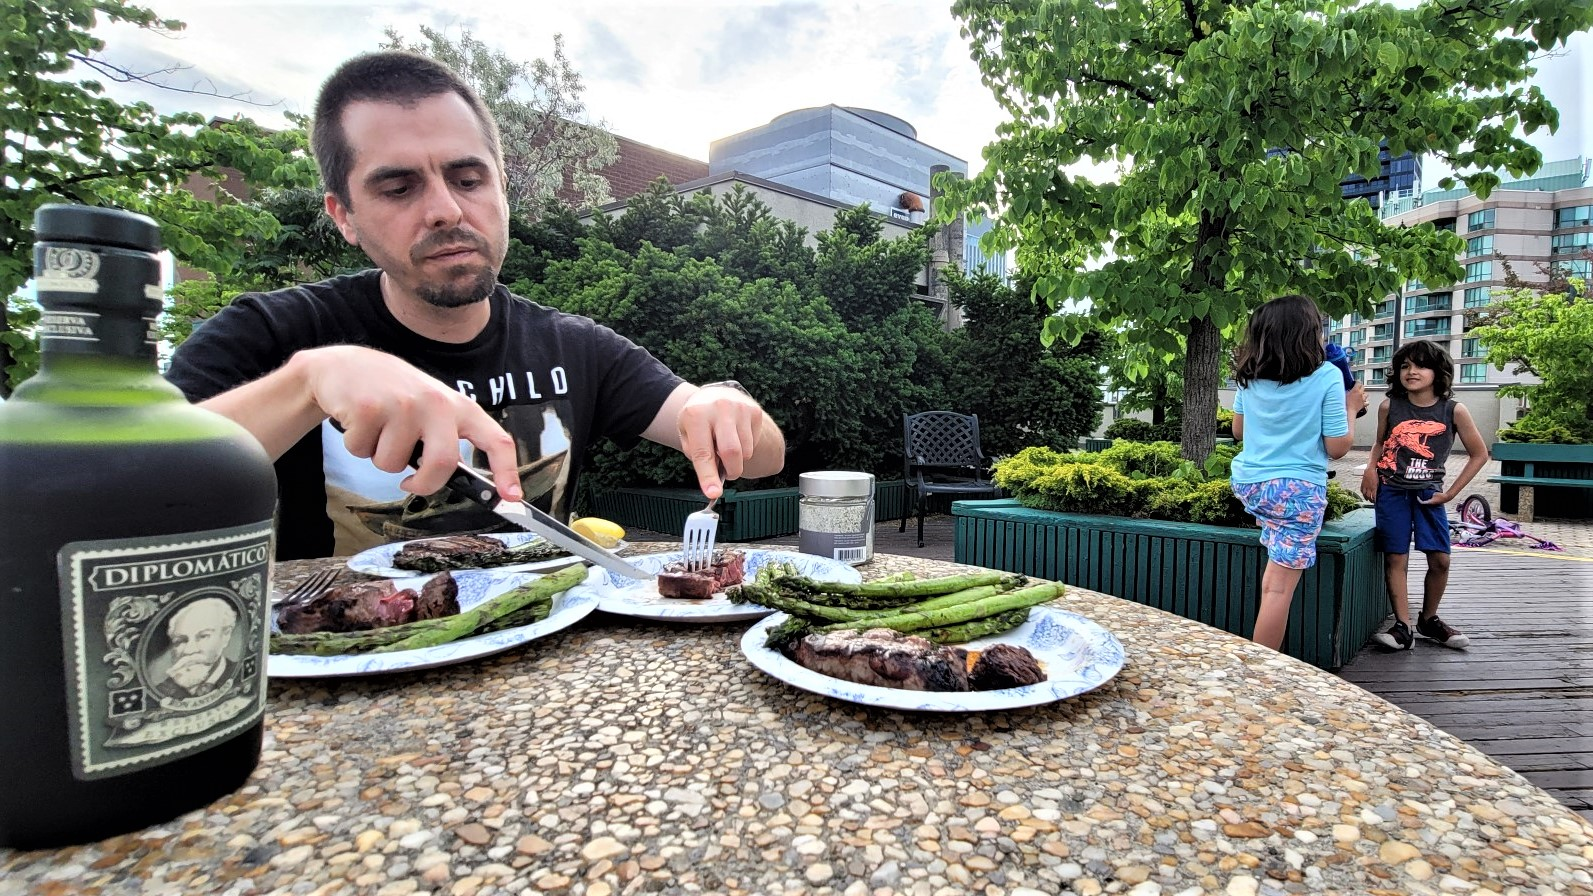 Man cutting steak with bottle of rum on table